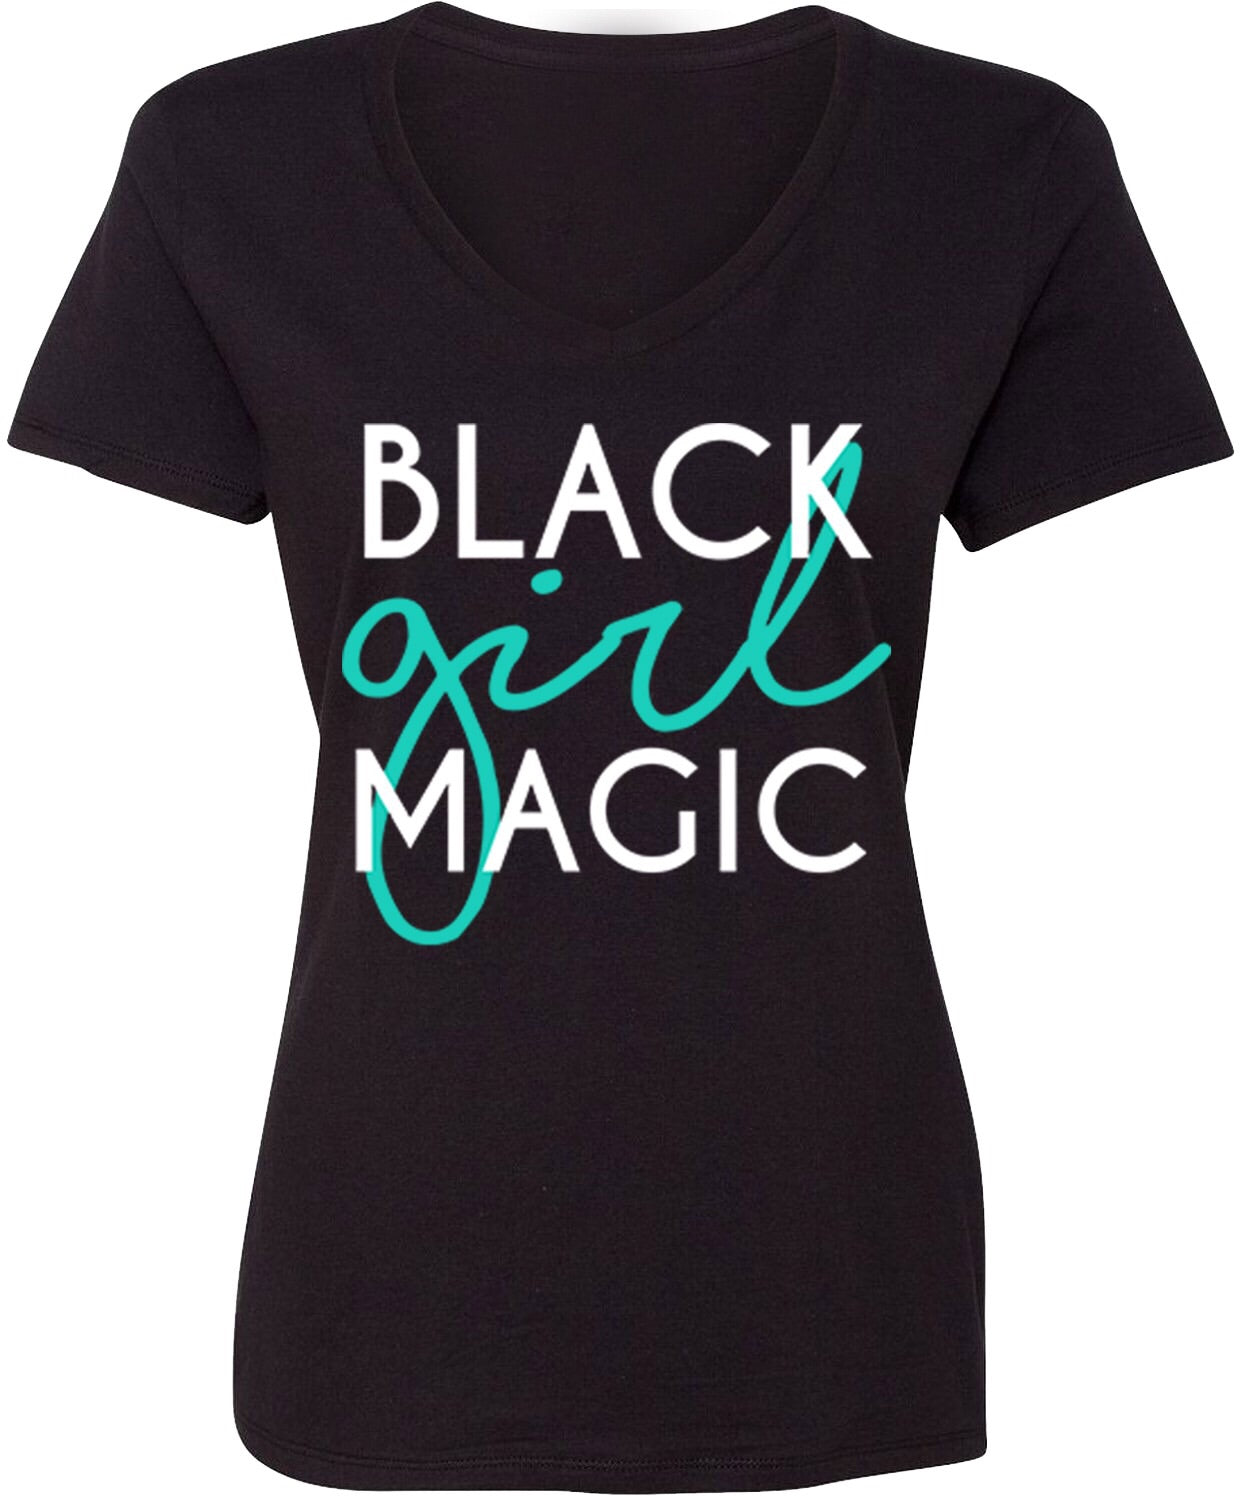 Black Girl Magic T-Shirt